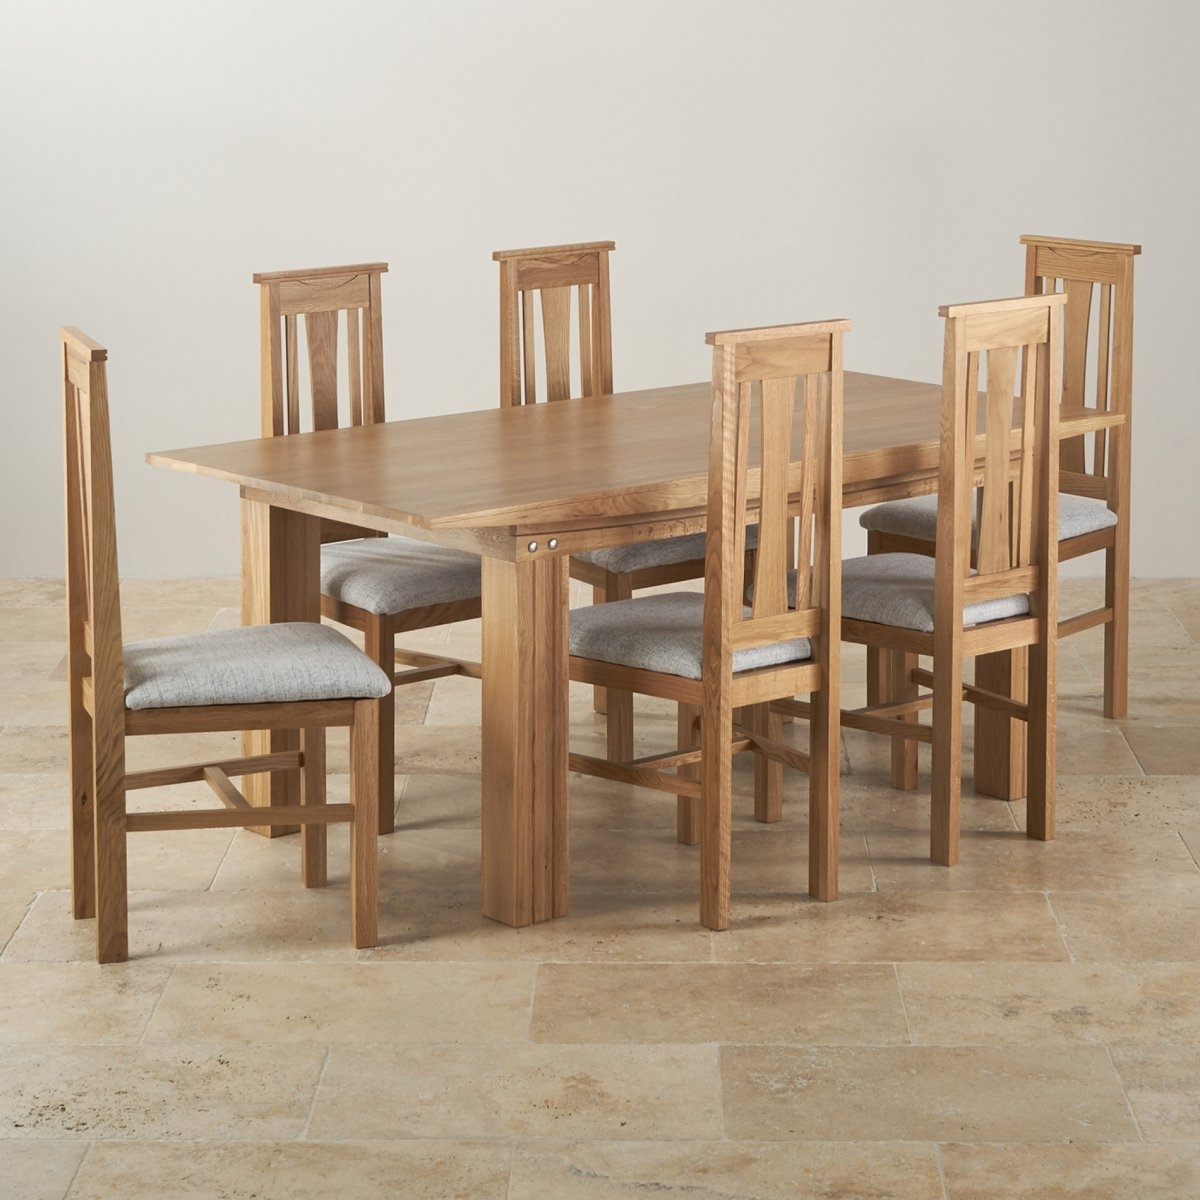 Popular Solid Oak Dining Table And 6 Chairs Solid Oak Dining Table And 6 Inside Chunky Solid Oak Dining Tables And 6 Chairs (View 21 of 25)